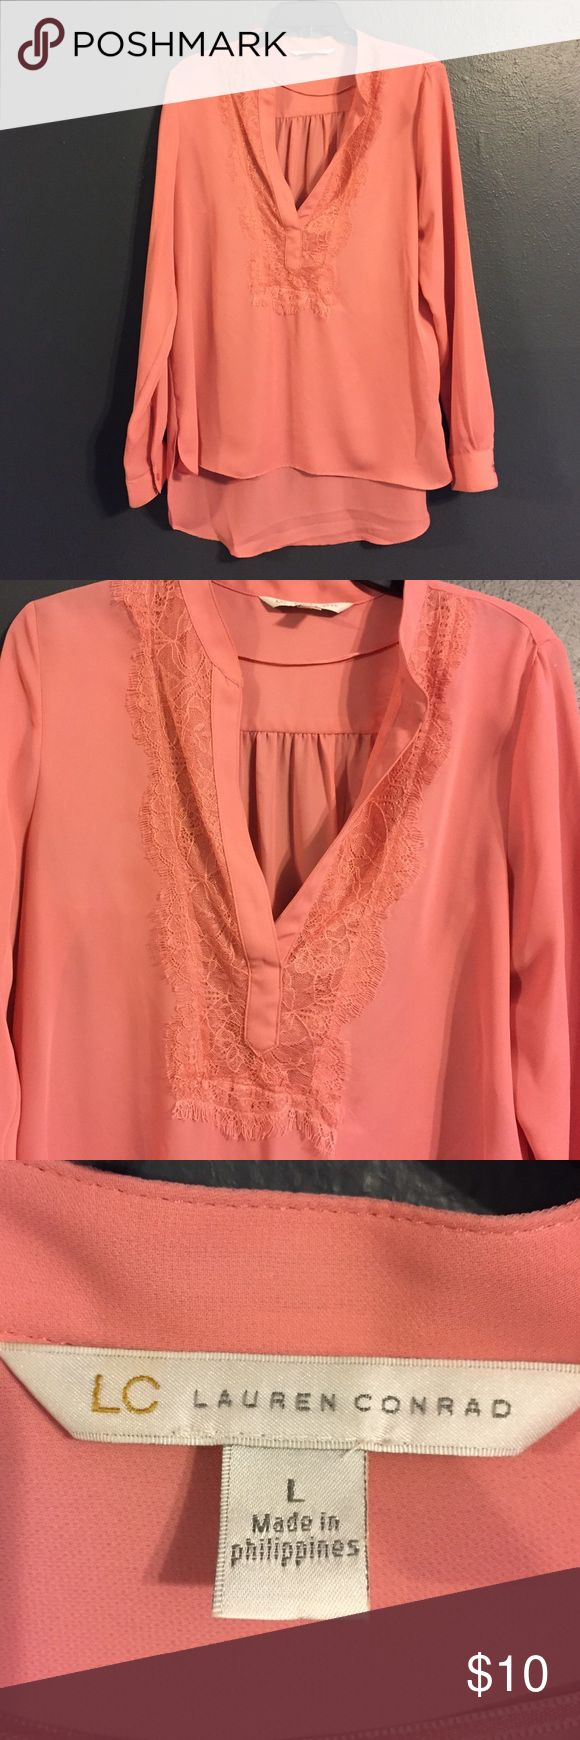 Lauren Conrad Blouse Coral Lauren Conrad blouse with lace trim. Excellent condition. LC Lauren Conrad Tops Blouses